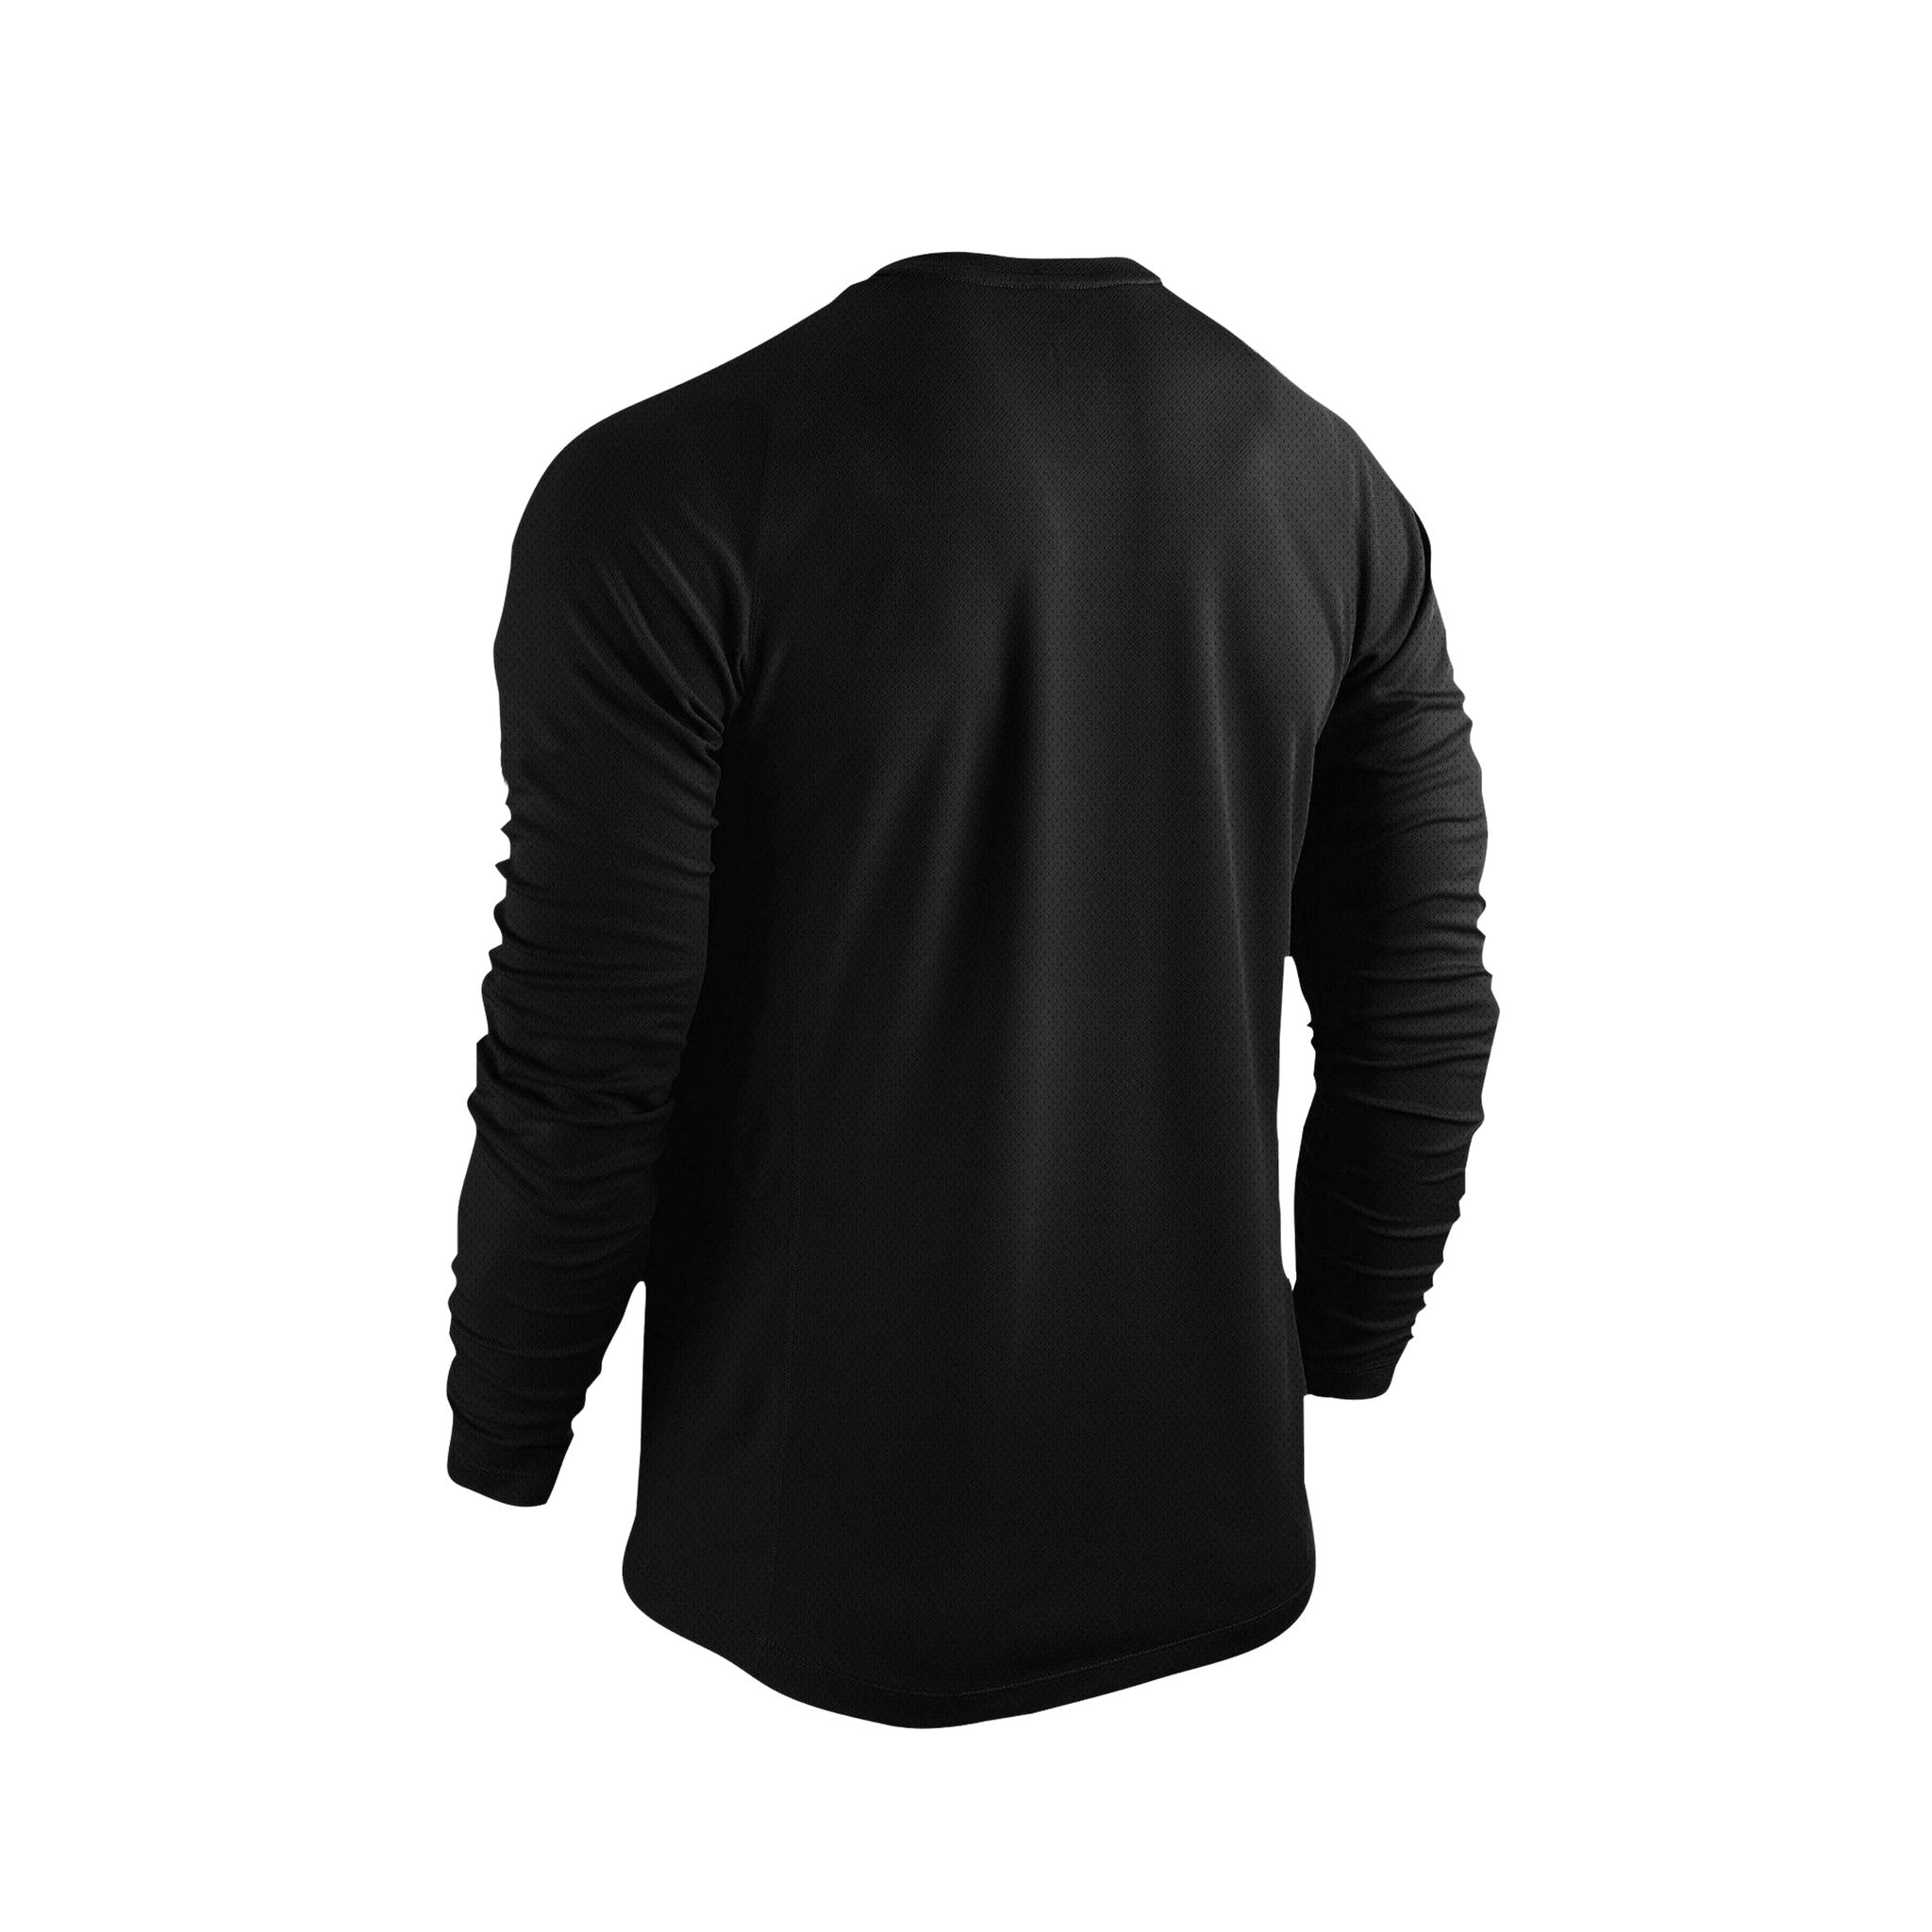 SportyFish Black Series black Long-sleeves t-shirt: Atlantic Sailfish back view